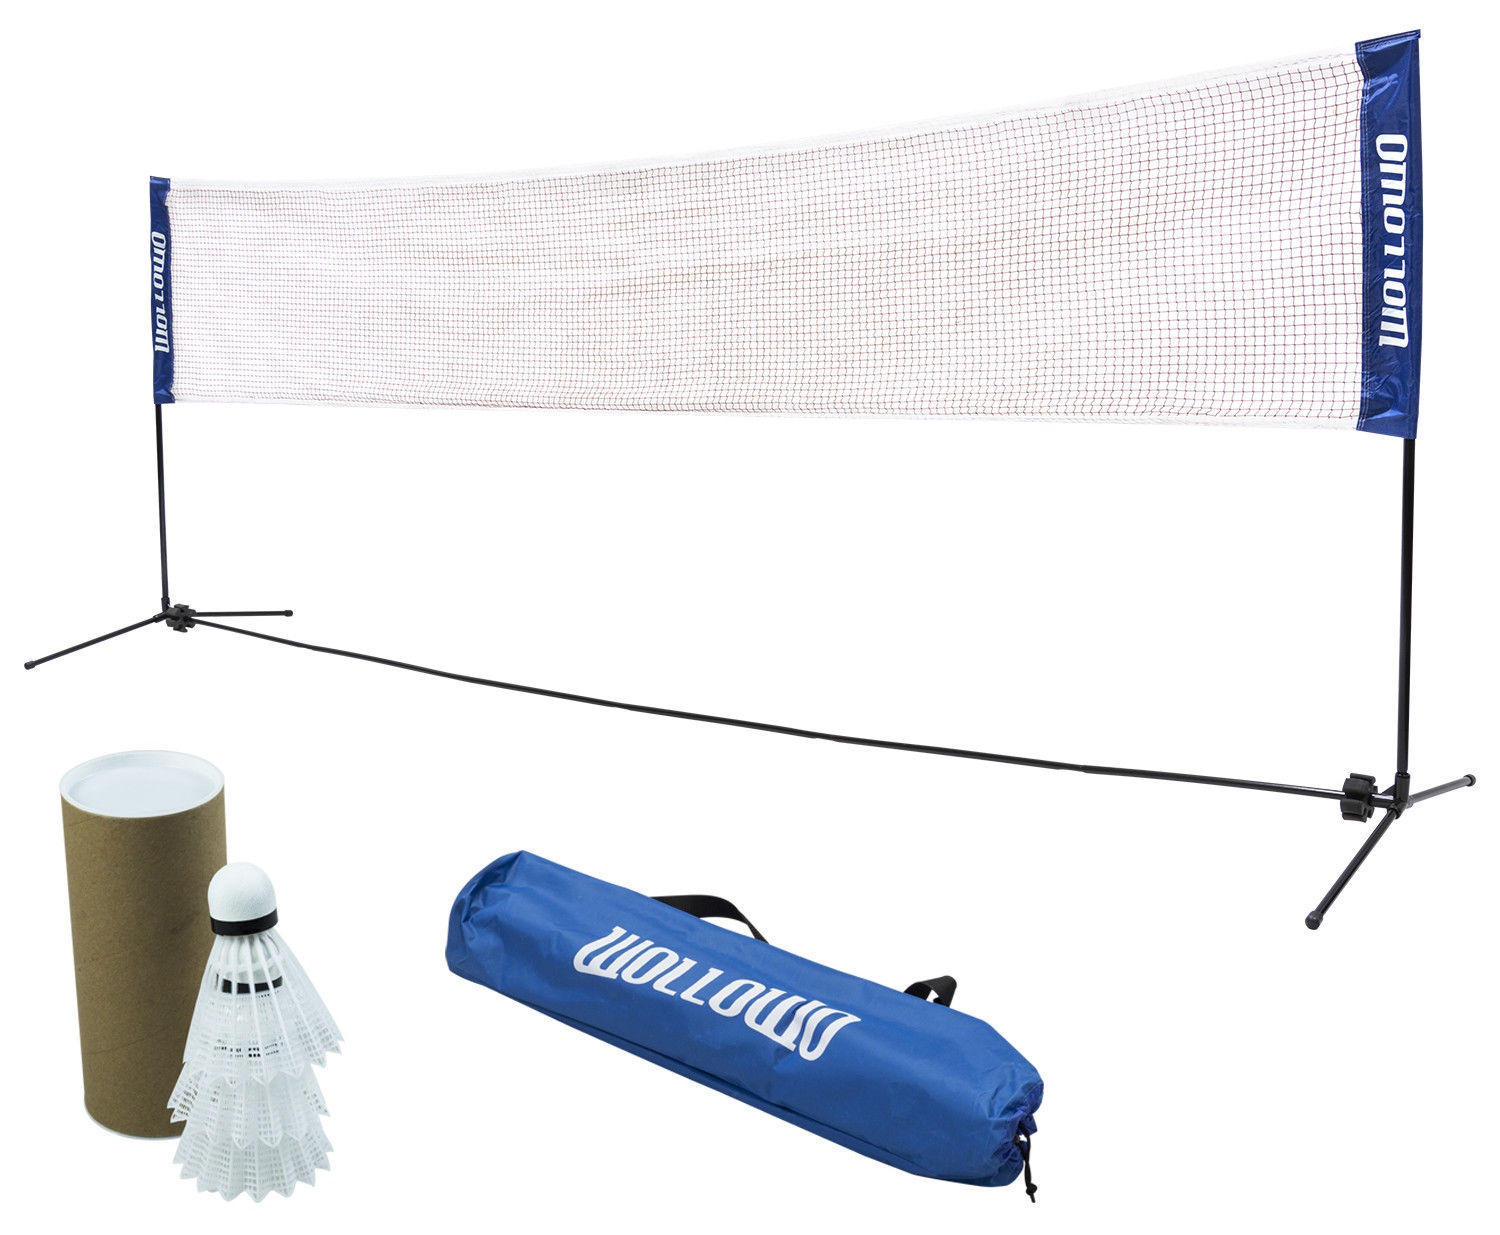 HOMCOM 4m Adjustable Foldable Portable Sports Net Set for Badminton Tennis Volleyball with Carry Bag Easy to Set Up